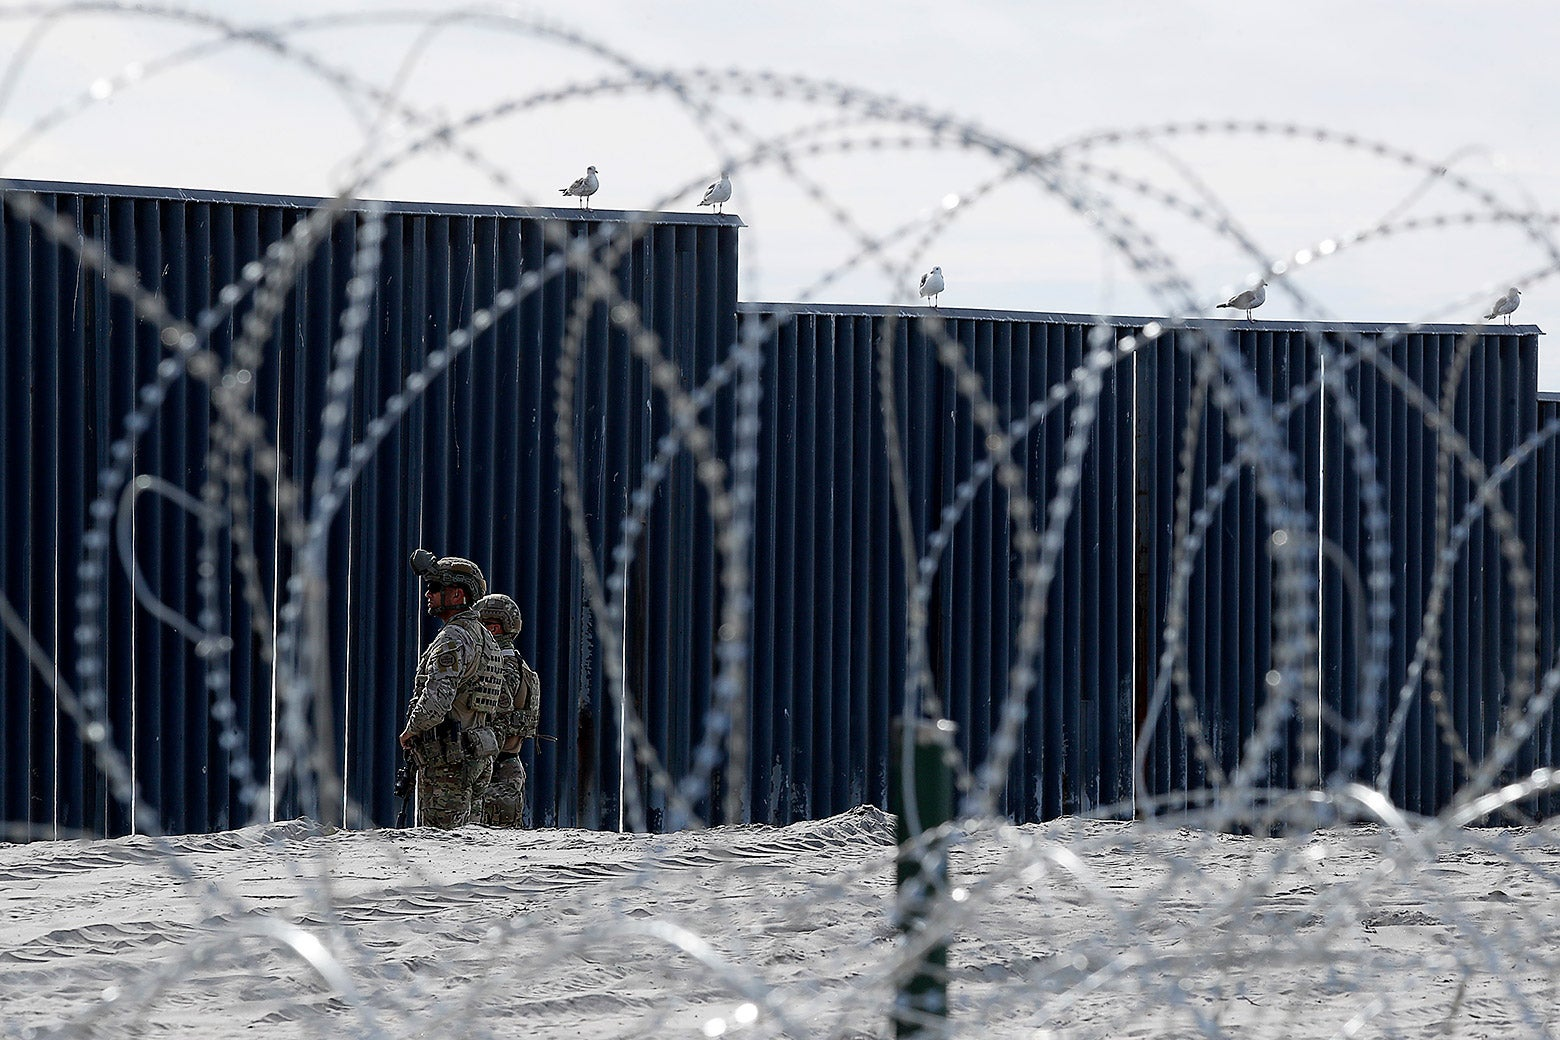 U.S. Border Patrol officers stand guard beside the border wall in Imperial Beach, California on Nov. 15.